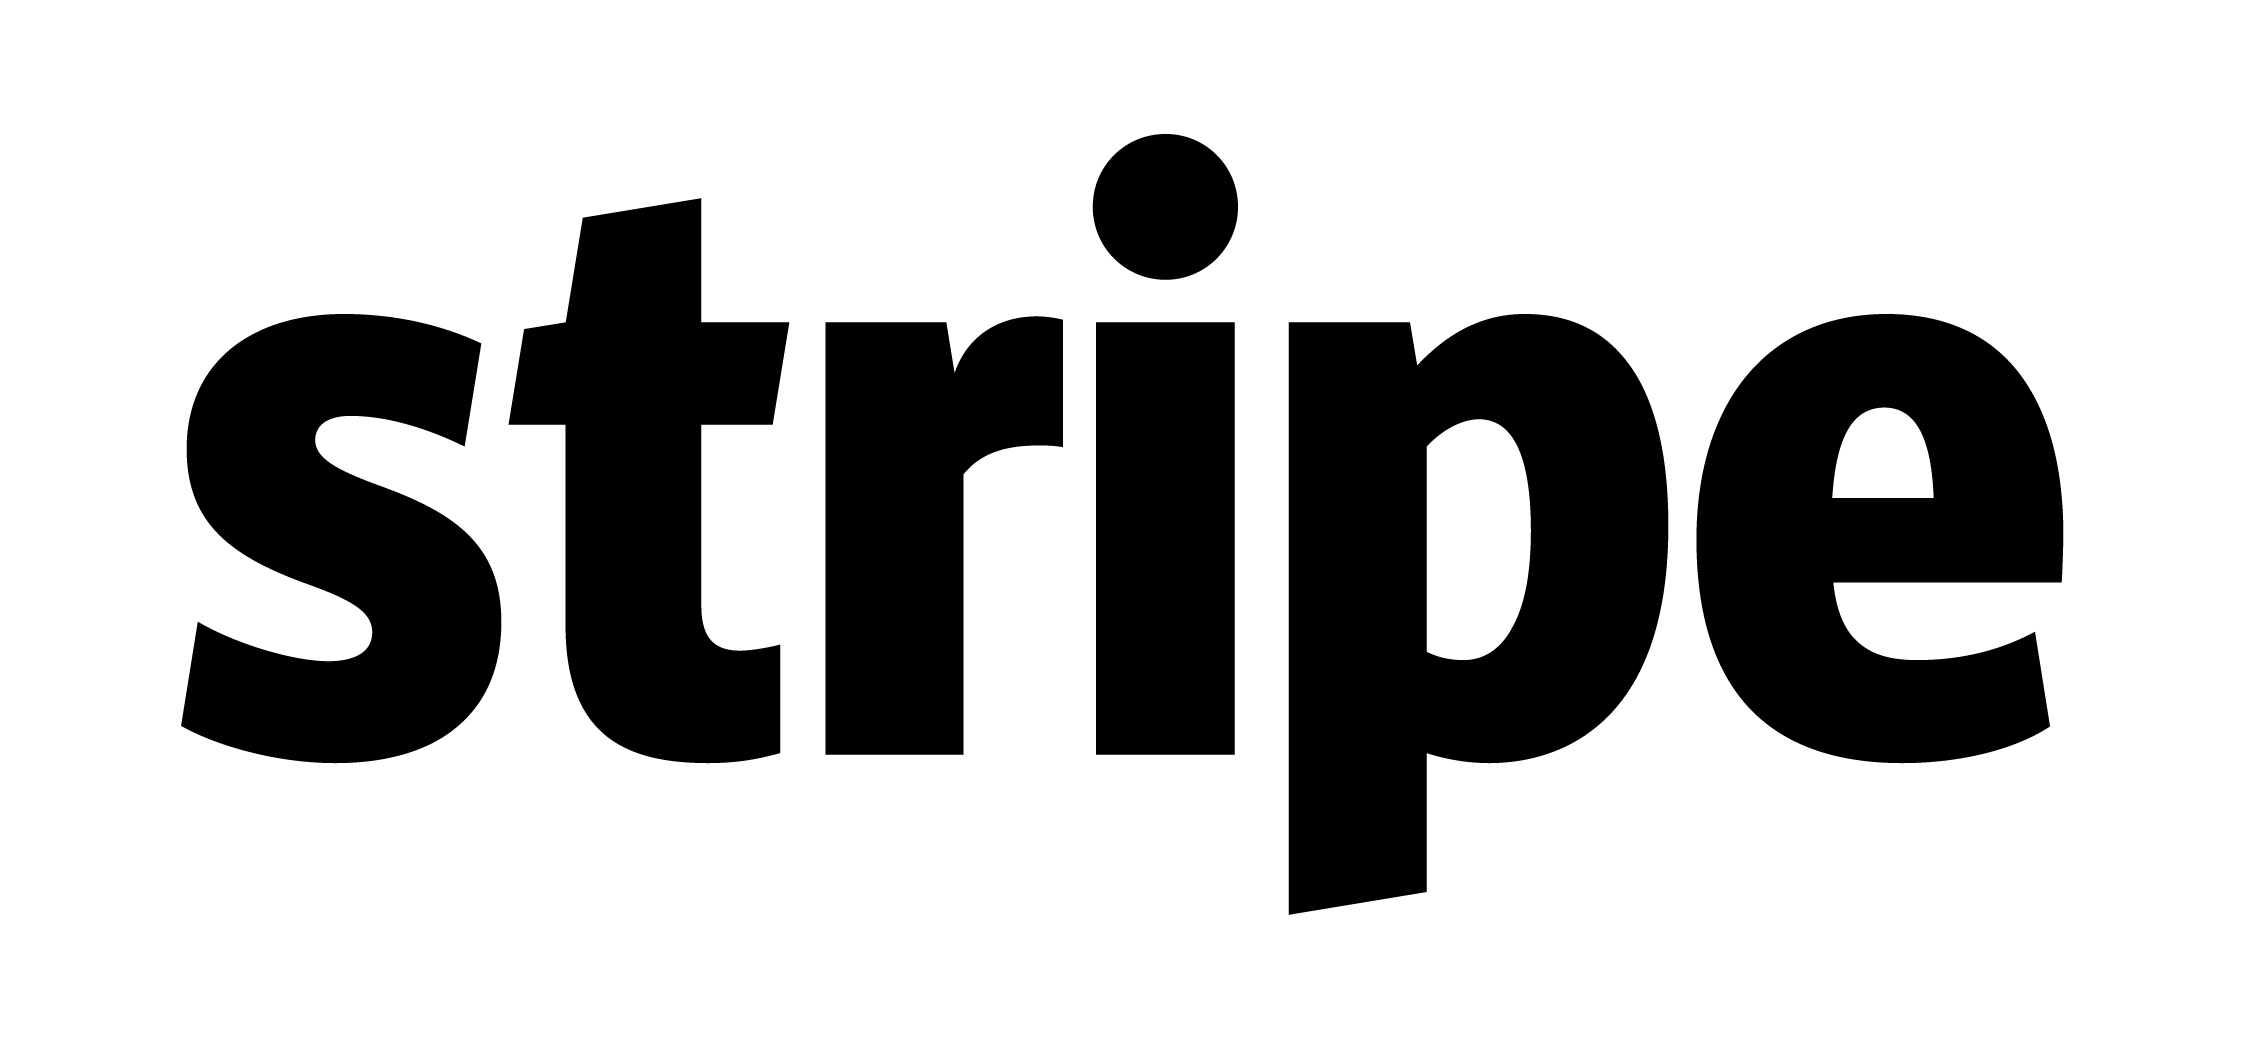 stripe logo – The European Sting - Critical News & Insights on European  Politics, Economy, Foreign Affairs, Business & Technology -  europeansting.com